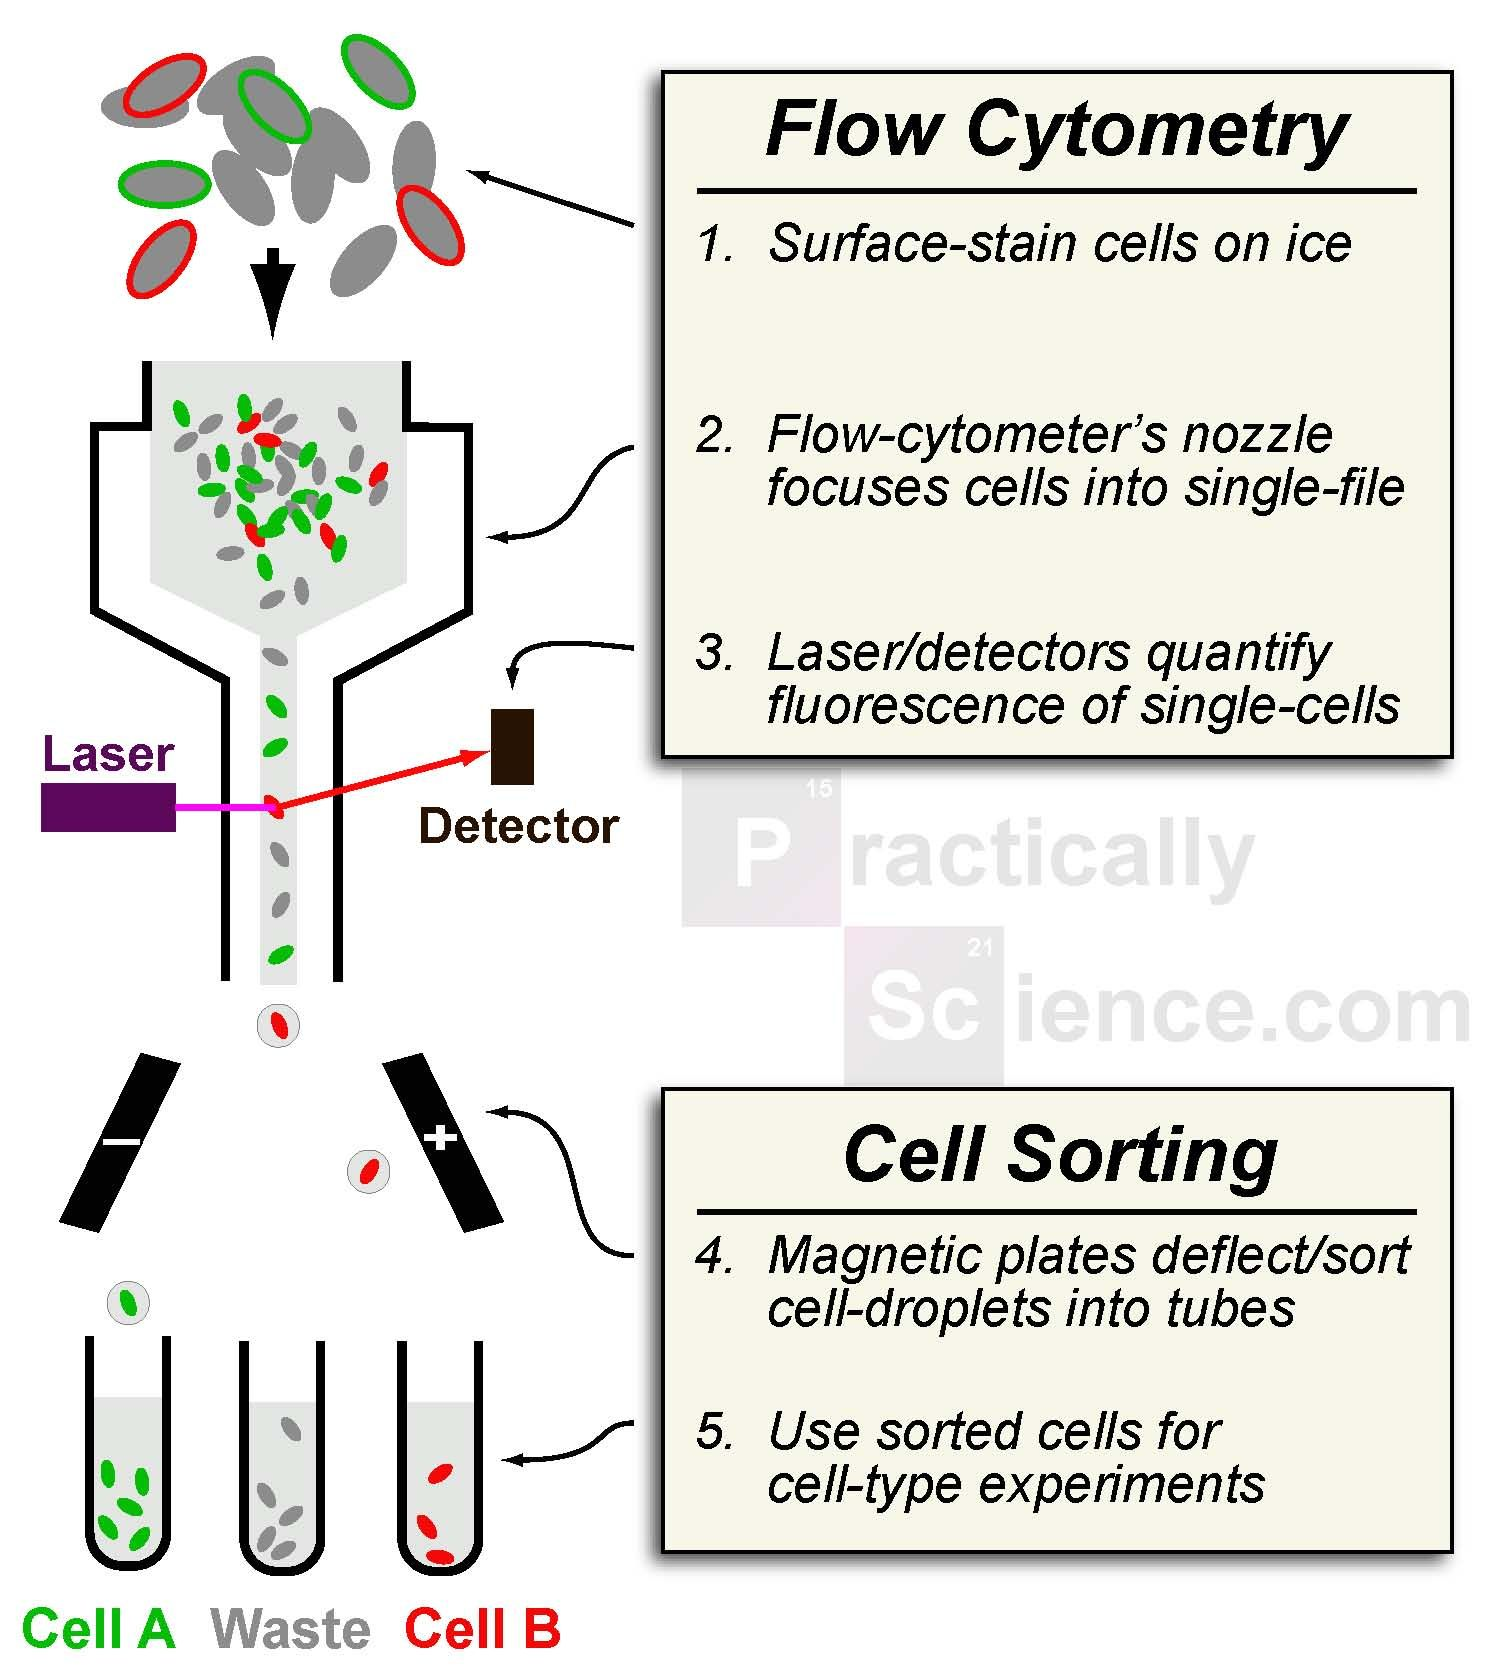 introduction to flow cytometry pdf